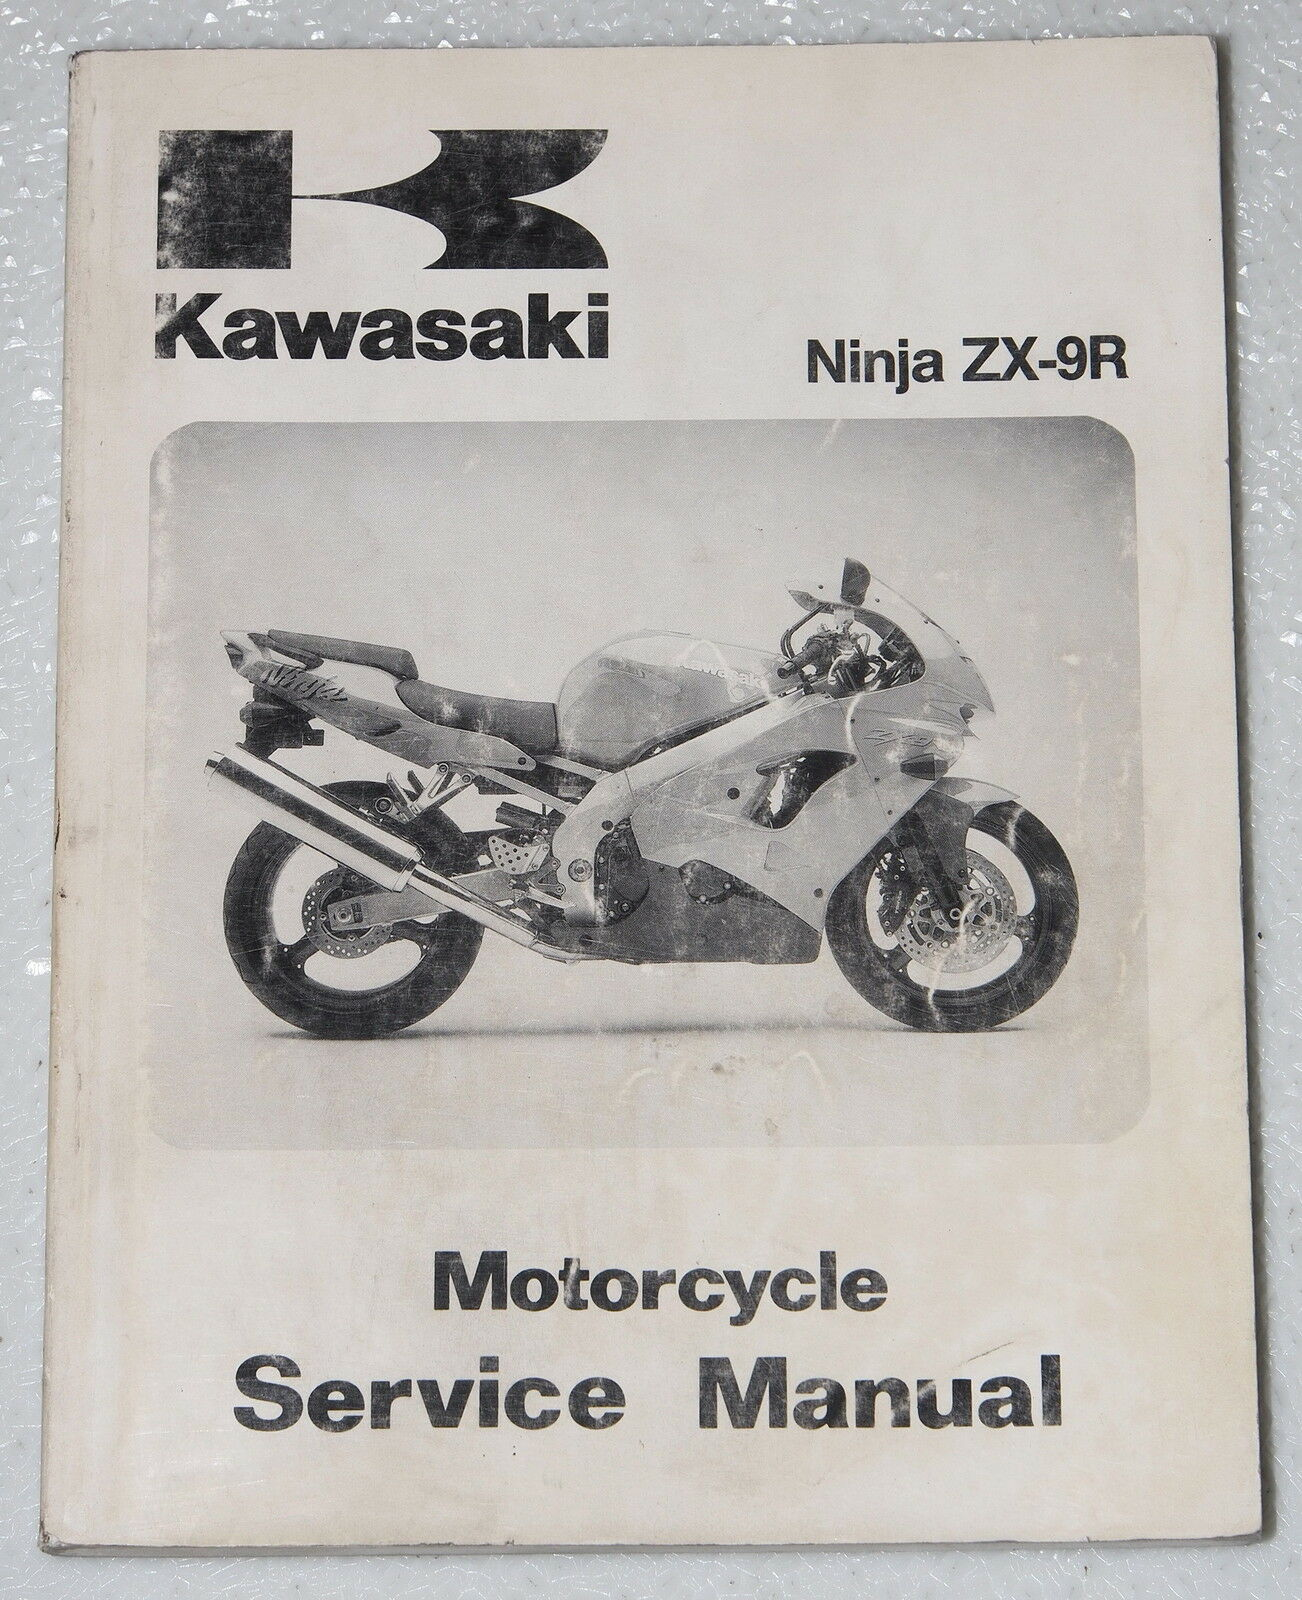 1998 KAWASAKI NINJA ZX-9R Service Manual ZX900-D1 Motorcycle Factory Shop  Repair 1 of 1Only 1 available ...